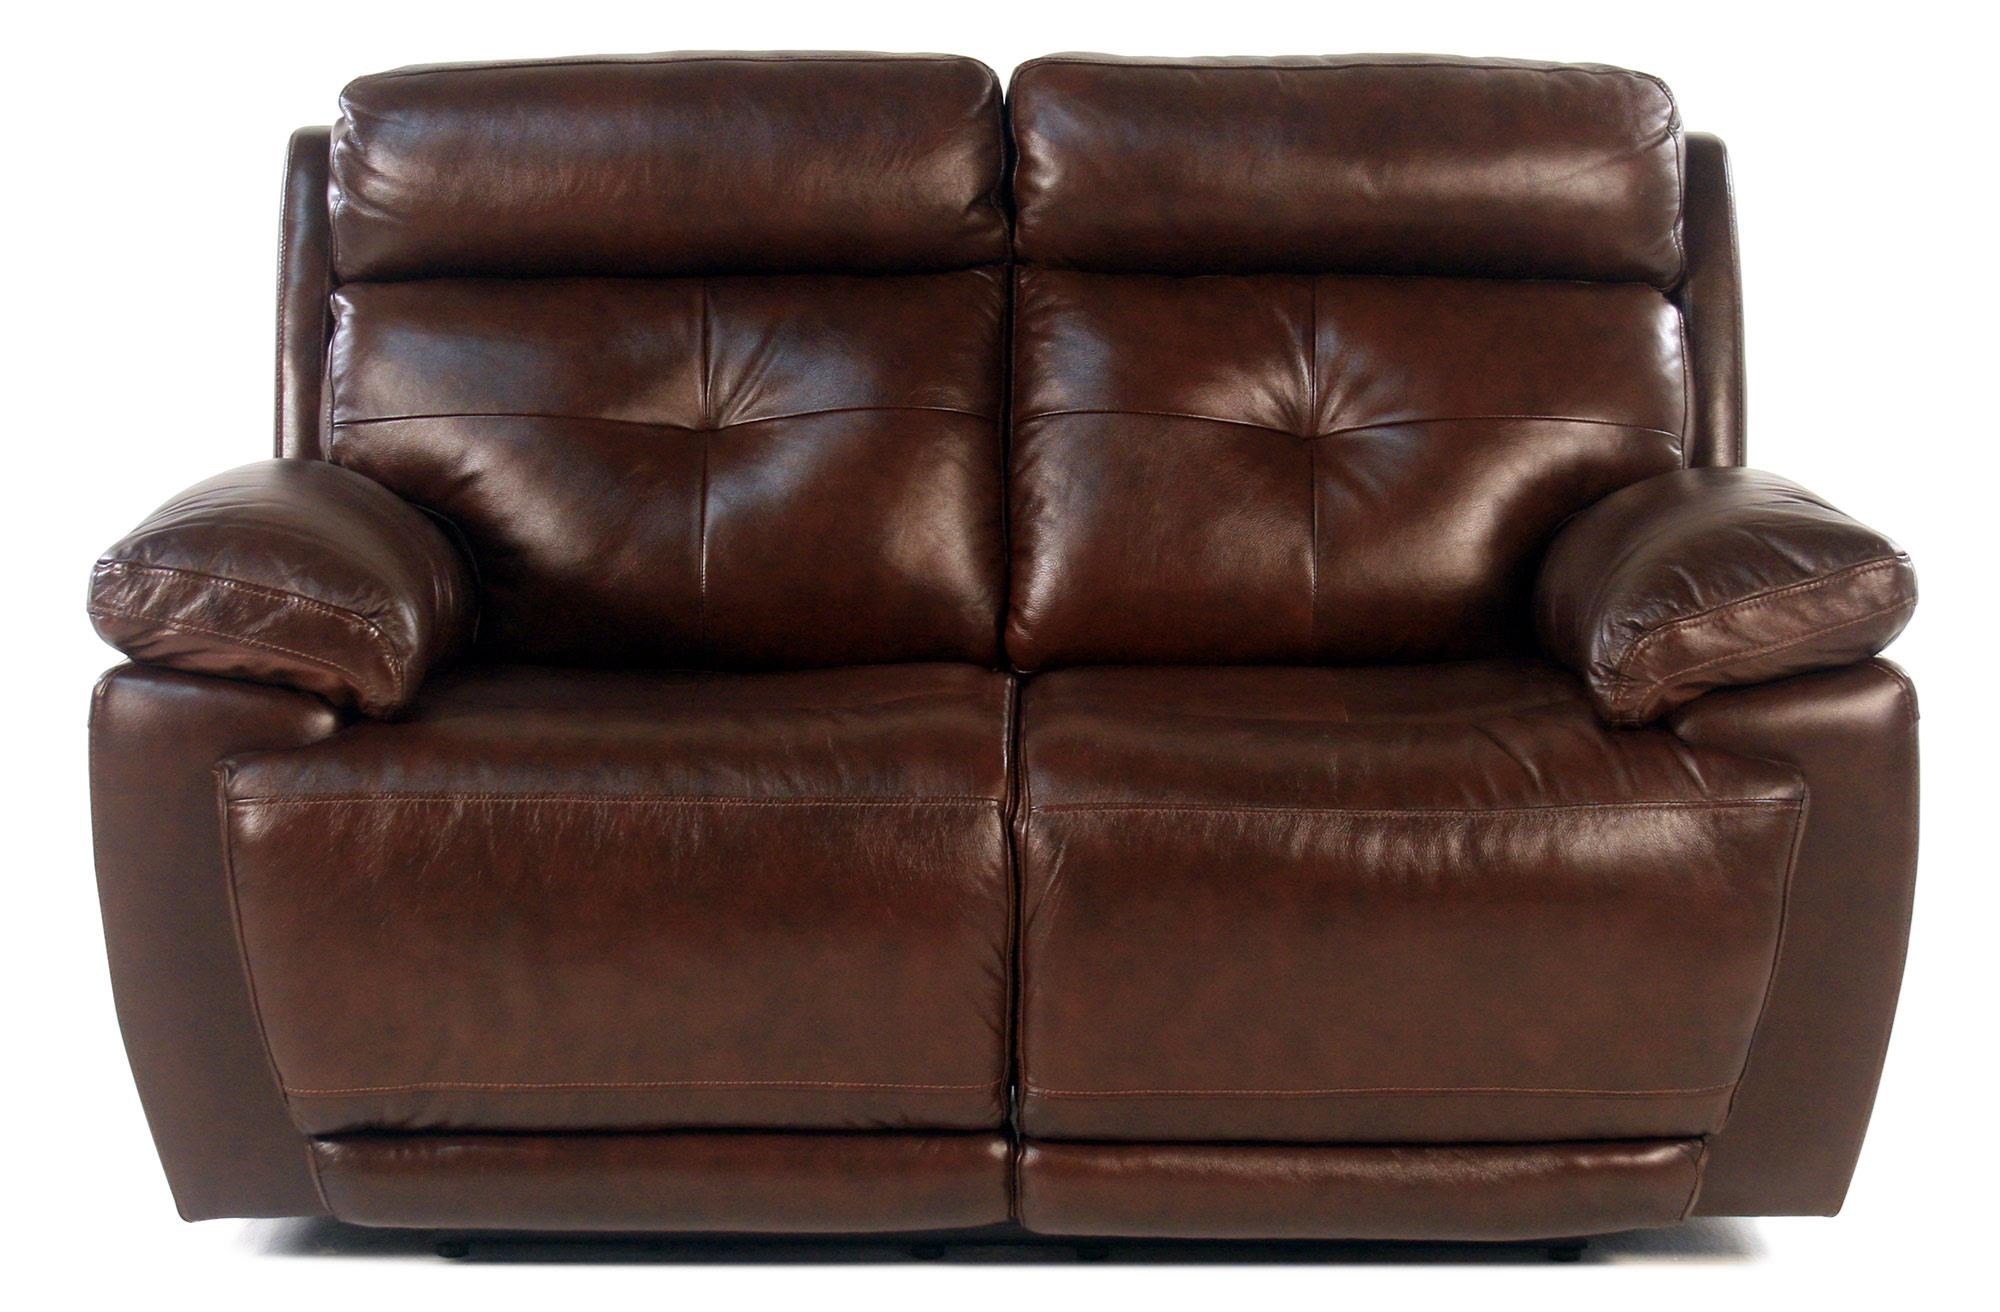 Loft Leather Jasper Power Reclining Leather Loveseat - Item Number: E1268-318